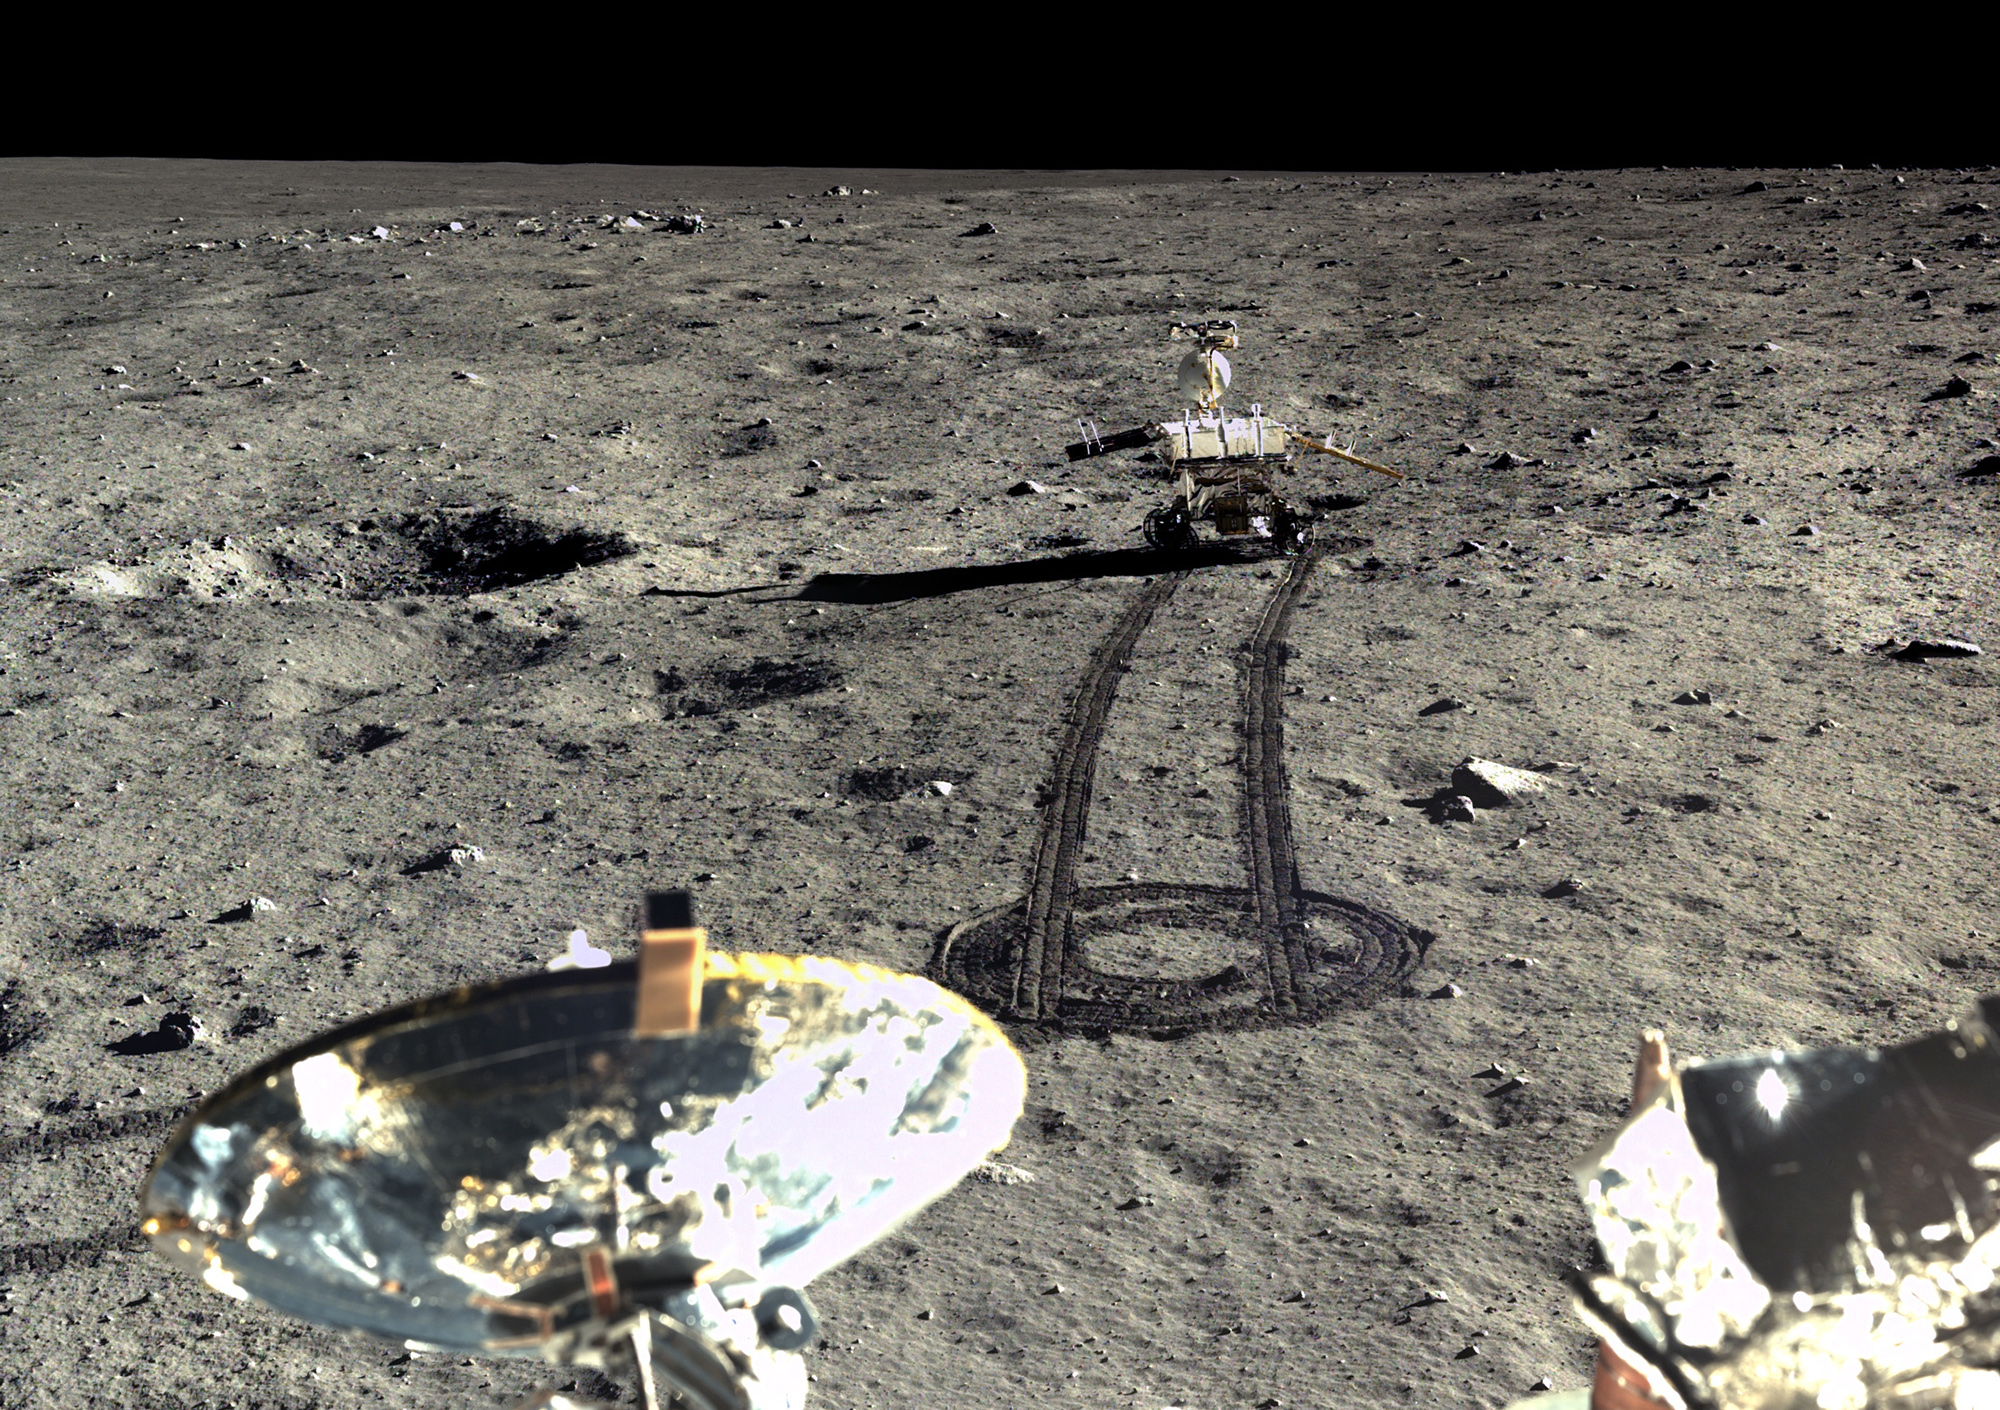 Rover Yutu driving off lander Chang'e 3